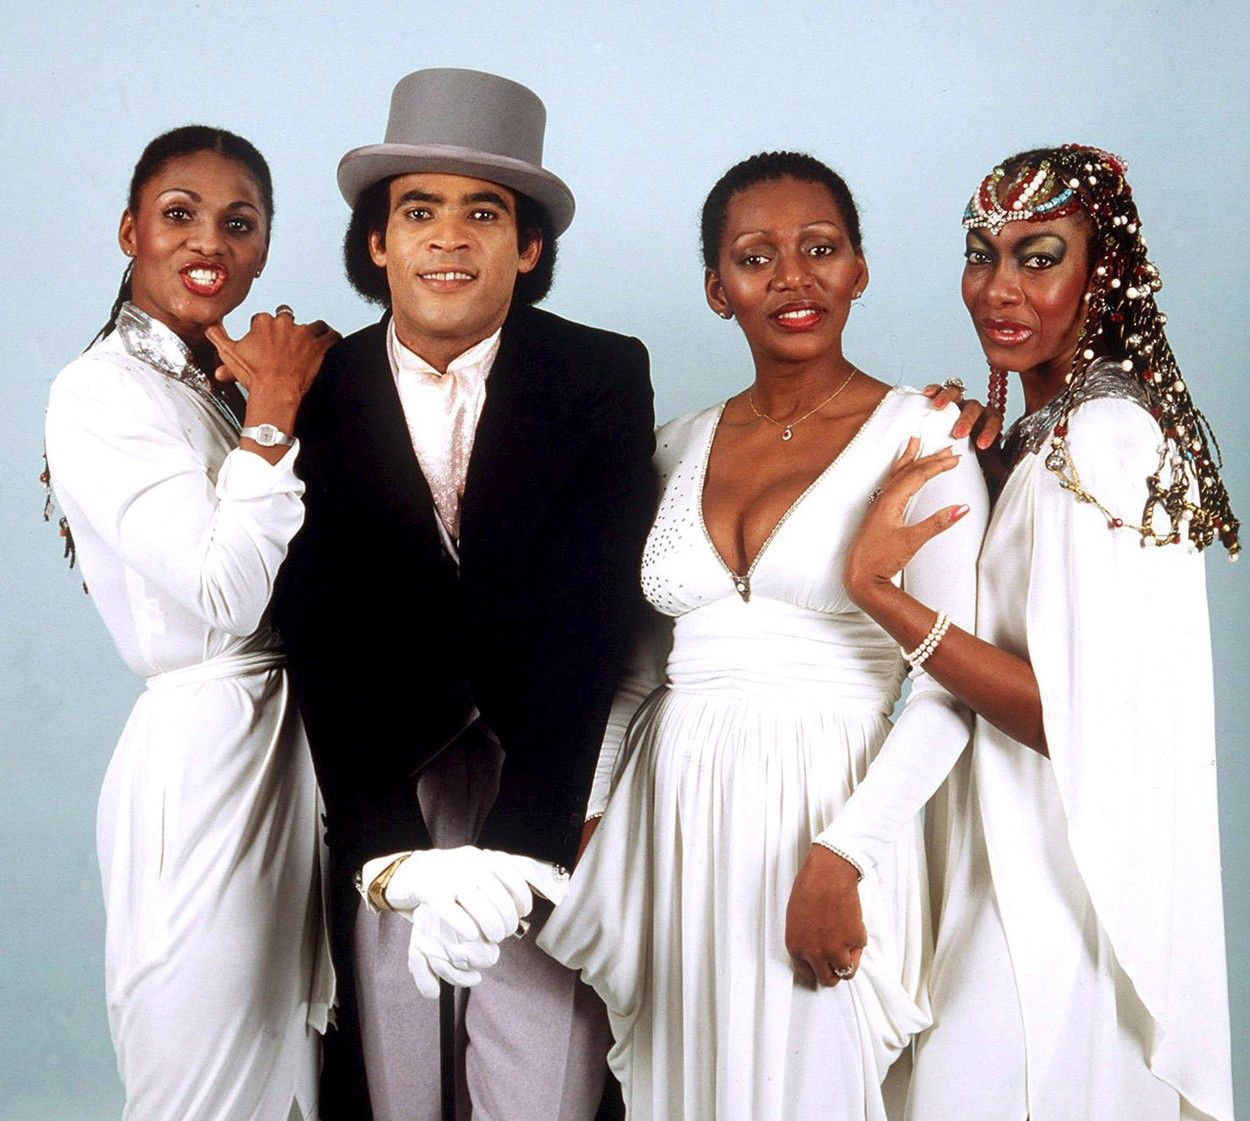 (FILE) Picture dated April 1981 shows the band Boney M. with singer Bobby Farrell (2-L) in Germany. Dutch singer Bobby Farrell from the band Boney M. has died in Russia at the age of 61, his agent said on 30 December 2010. The only male member of the four-member group died in a hotel room in St Petersburg, John Seine told the German Press Agency dpa in Amsterdam.  /MARTIN ATHENSTAEDT, Image: 229403124, License: Rights-managed, Restrictions: , Model Release: no, Credit line: Profimedia, TEMP EPA